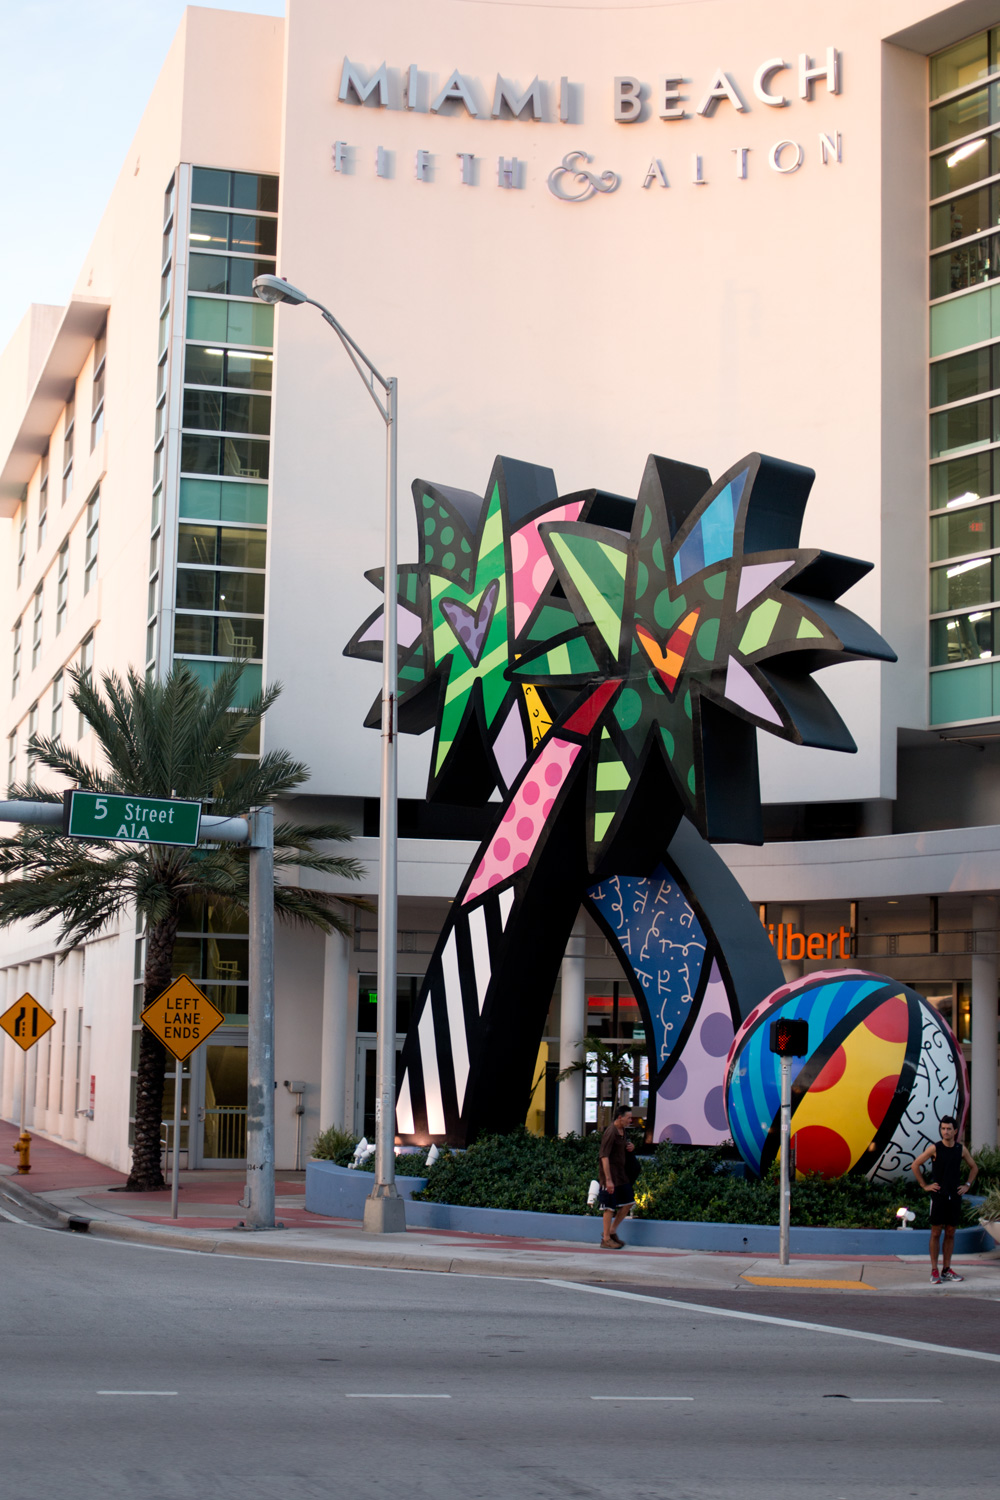 Miami Beach Fifth and Alton Romero Britto Installation Art / hellorigby!